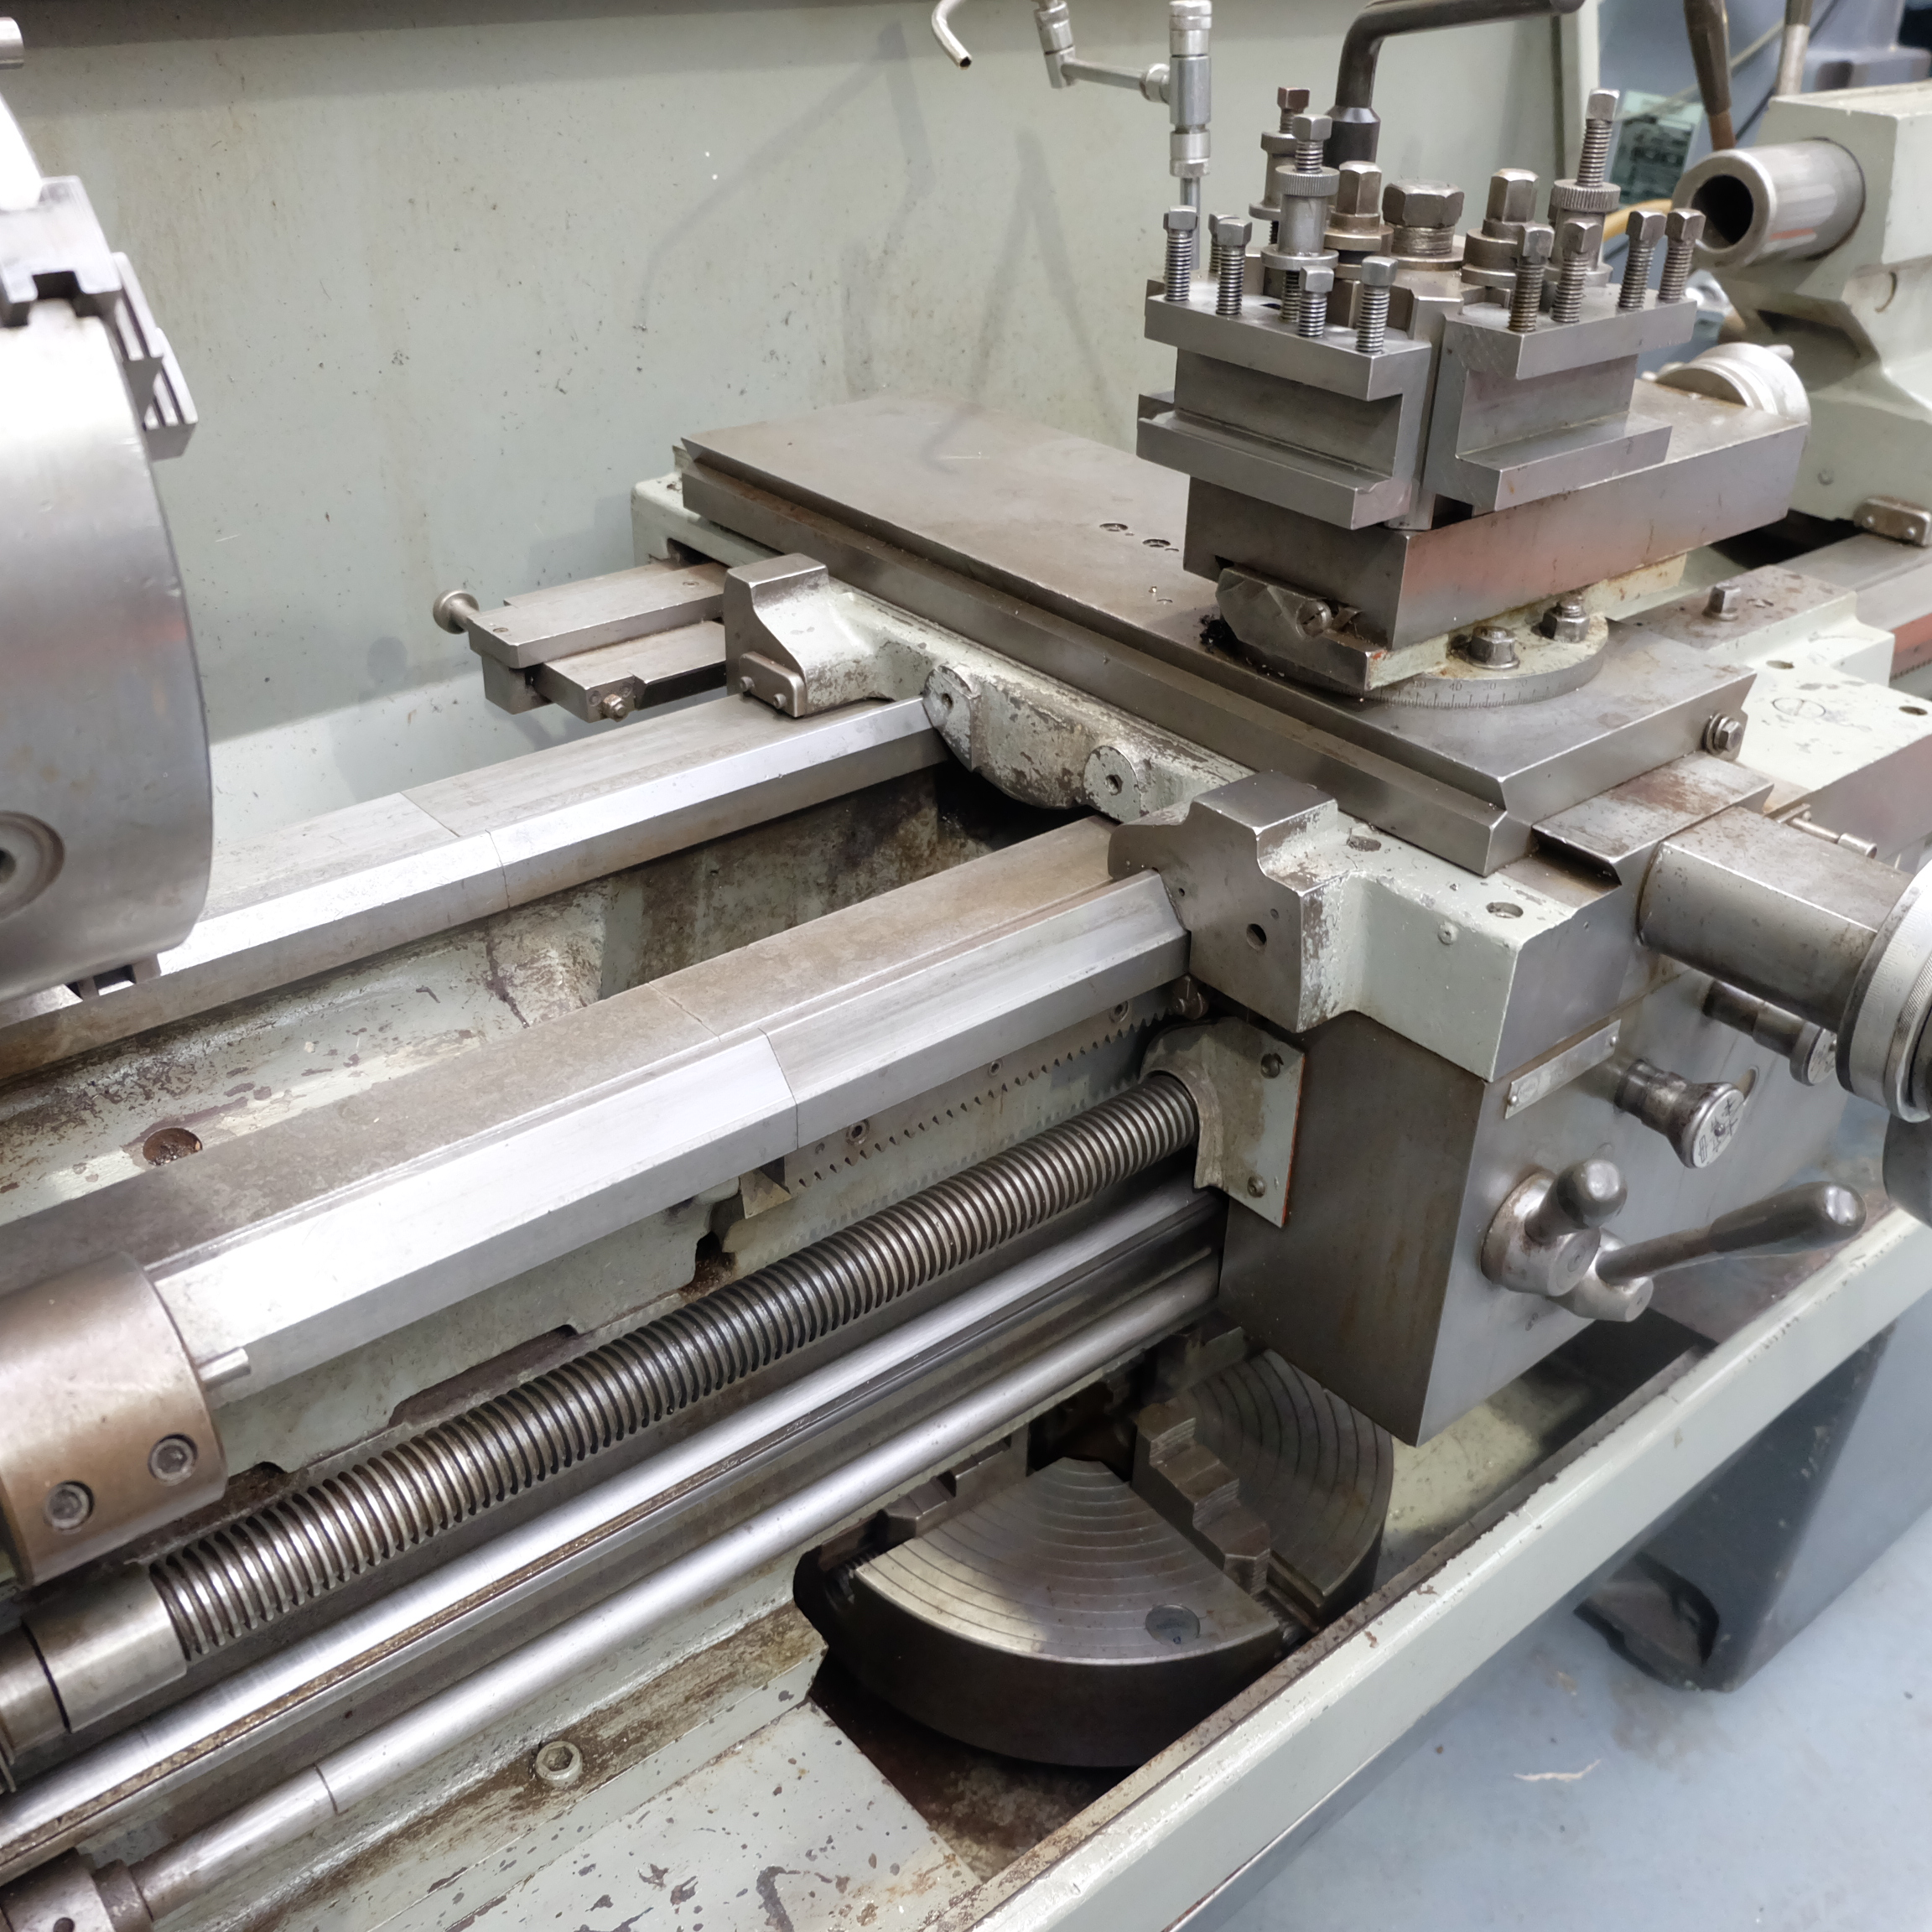 Colchester Mascot 1600 Gap Bed Centre Lathe. - Image 4 of 10